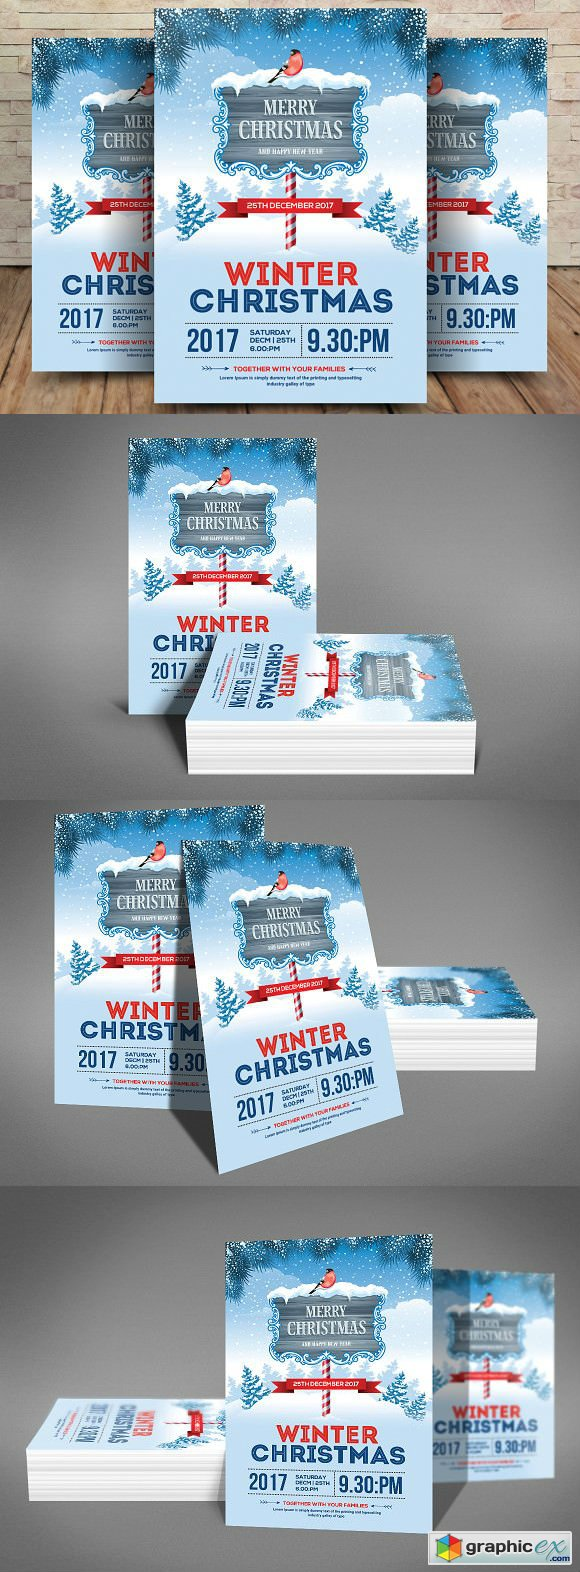 Merry Christmas Flyer Template 2019763